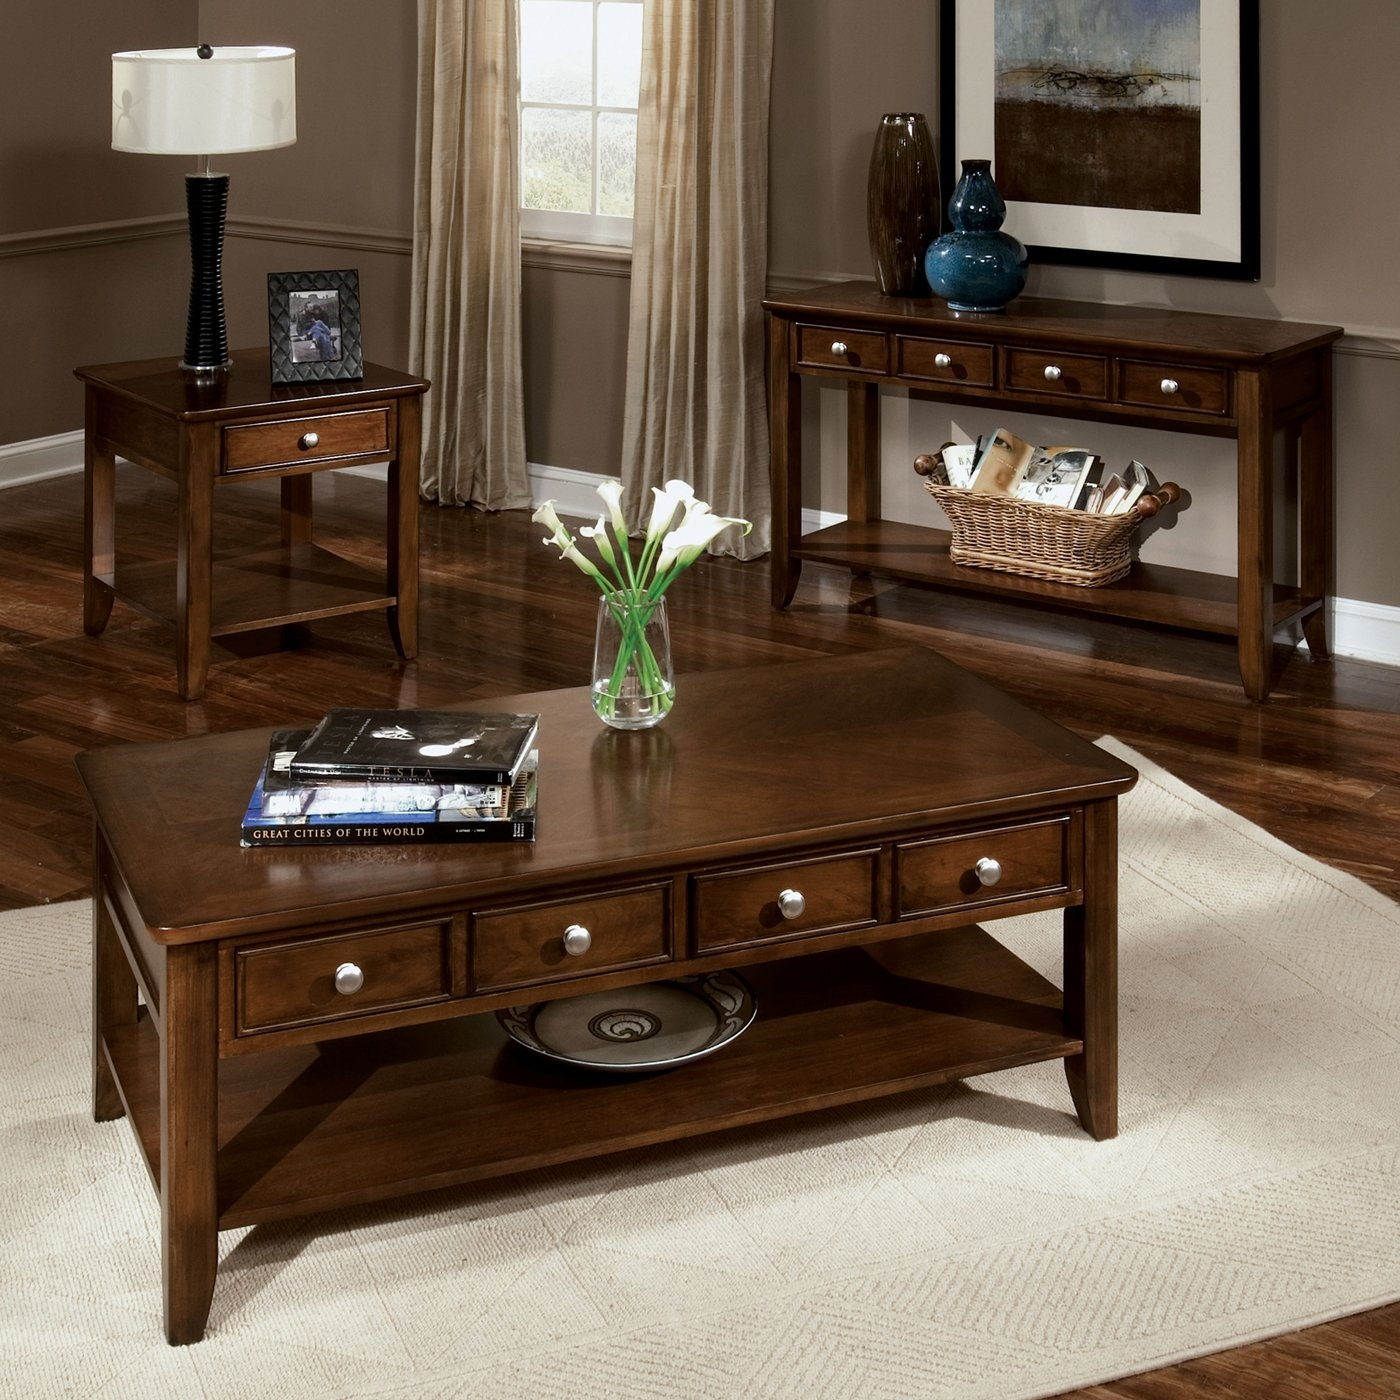 Contemporary Furniture 56 Formidable Living Room Tables Picture